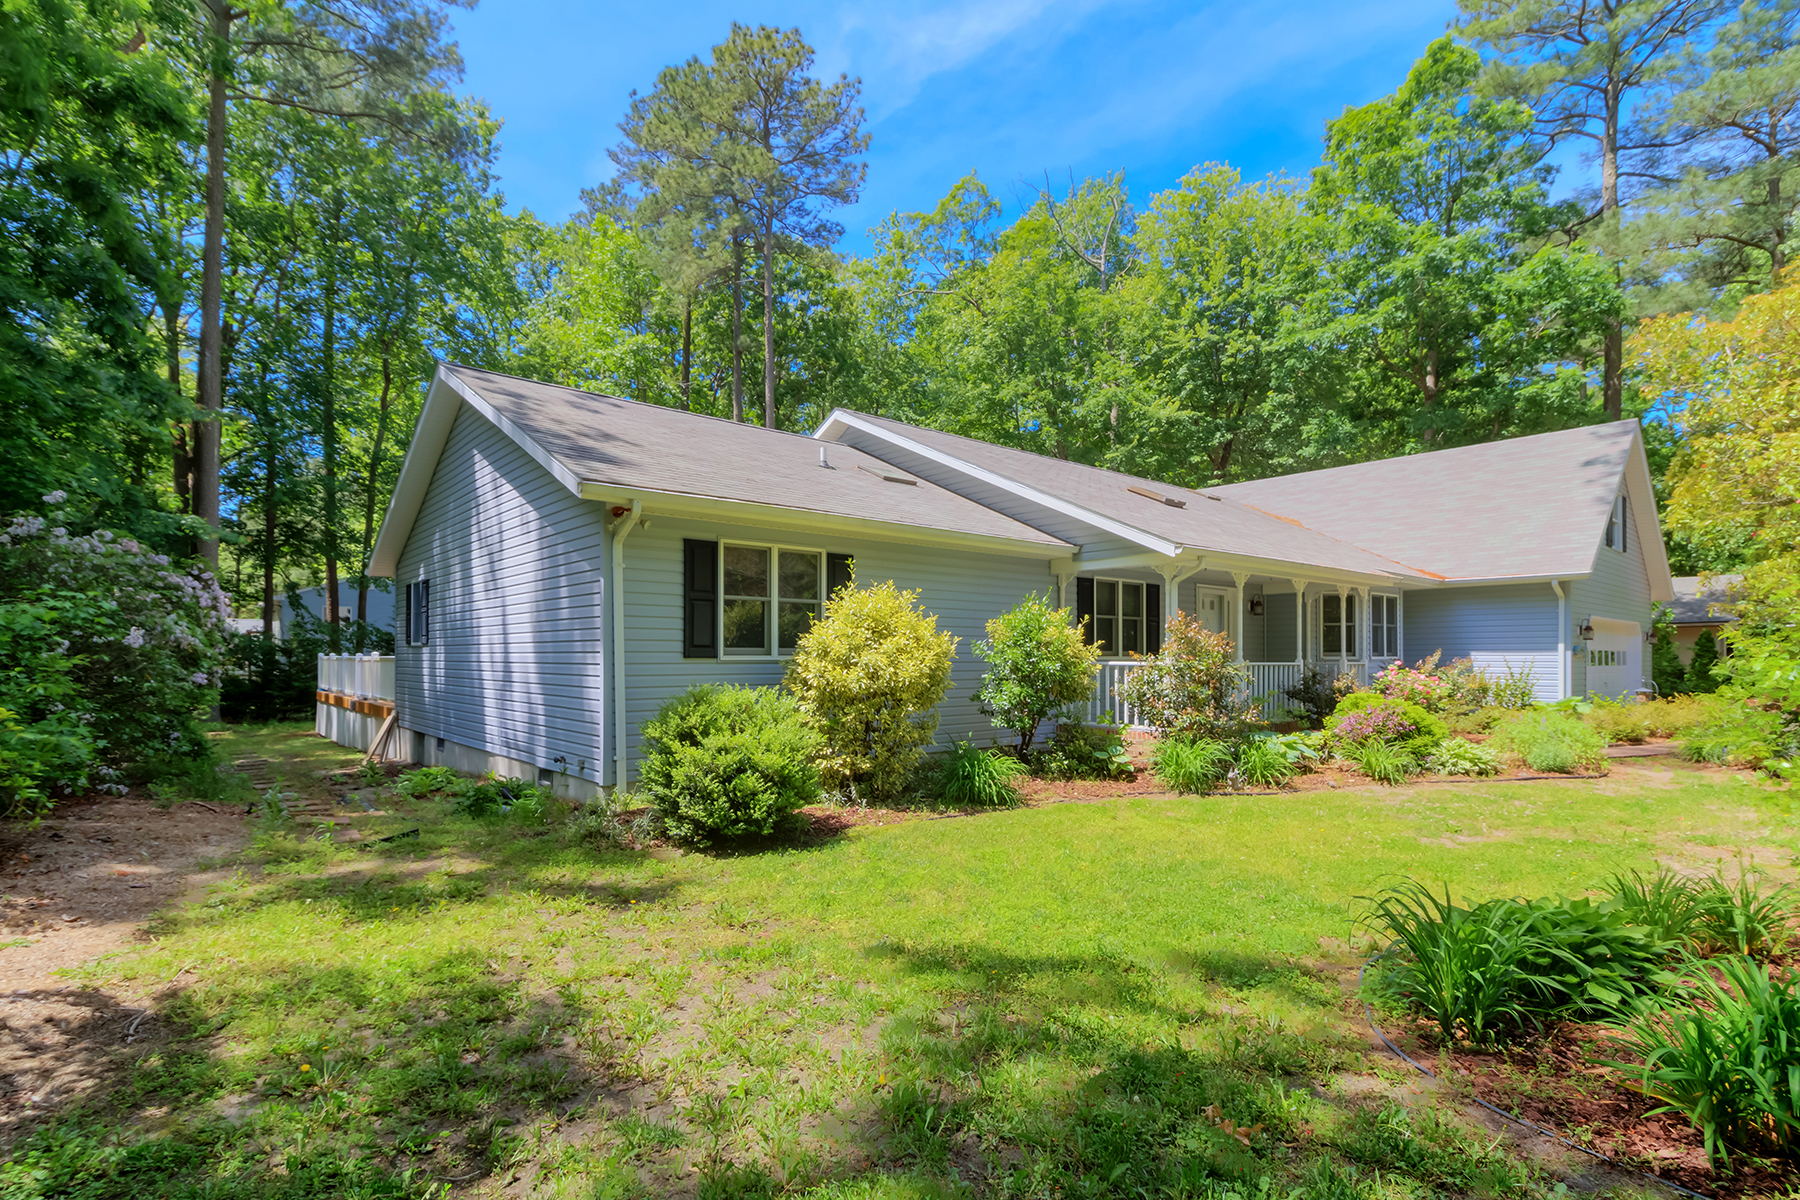 single family homes for Active at 32 Harpoon Rd , Ocean Pines, MD 21811 32 Harpoon Rd Ocean Pines, Maryland 21811 United States